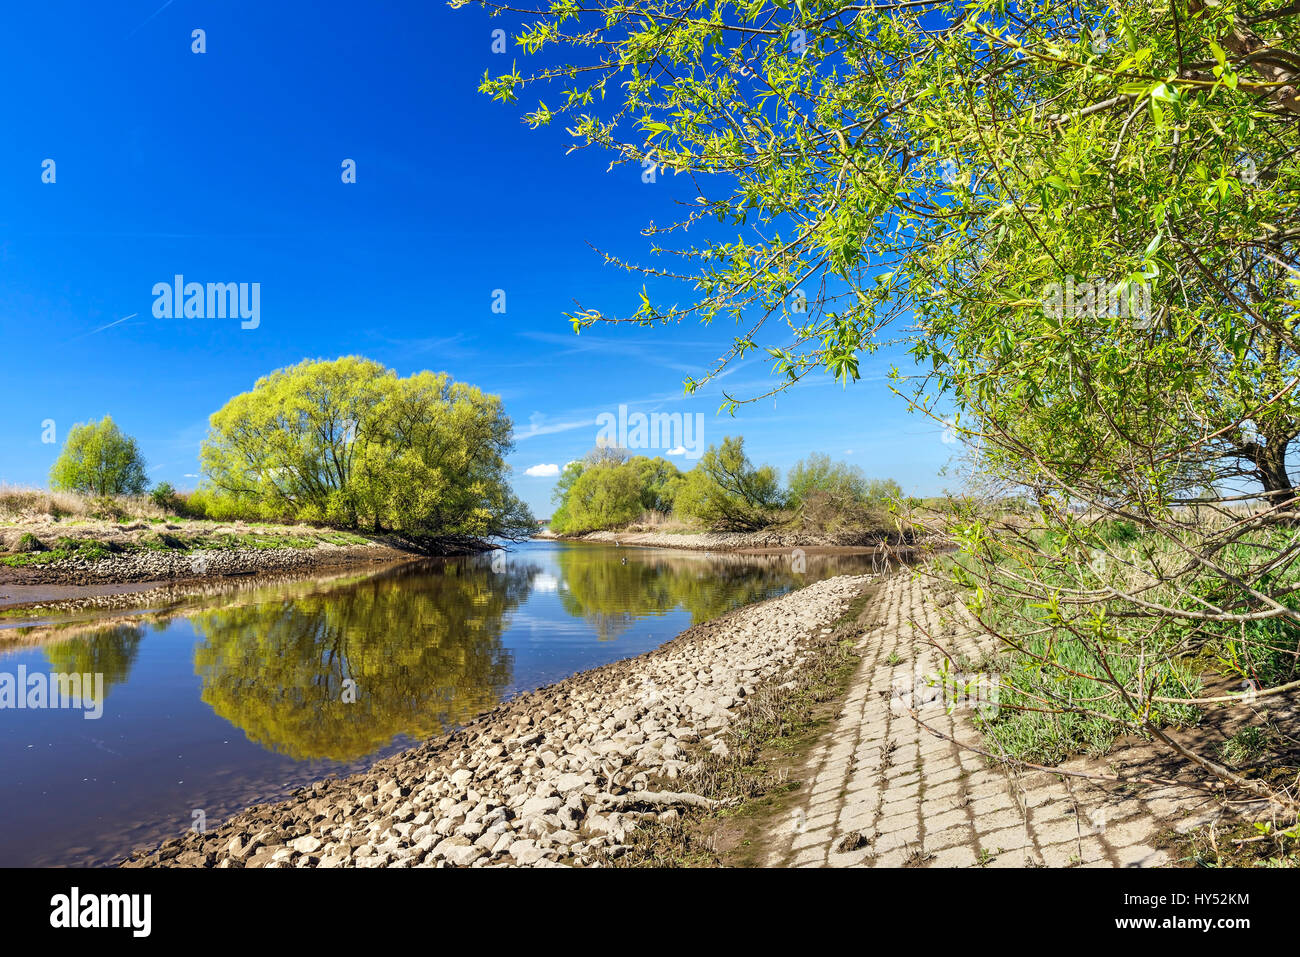 The Elbe and nature reserve Zollenspieker in the 4 and march landing, Hamburg, Germany, Europe, Elbe und Naturschutzgebiet Stock Photo